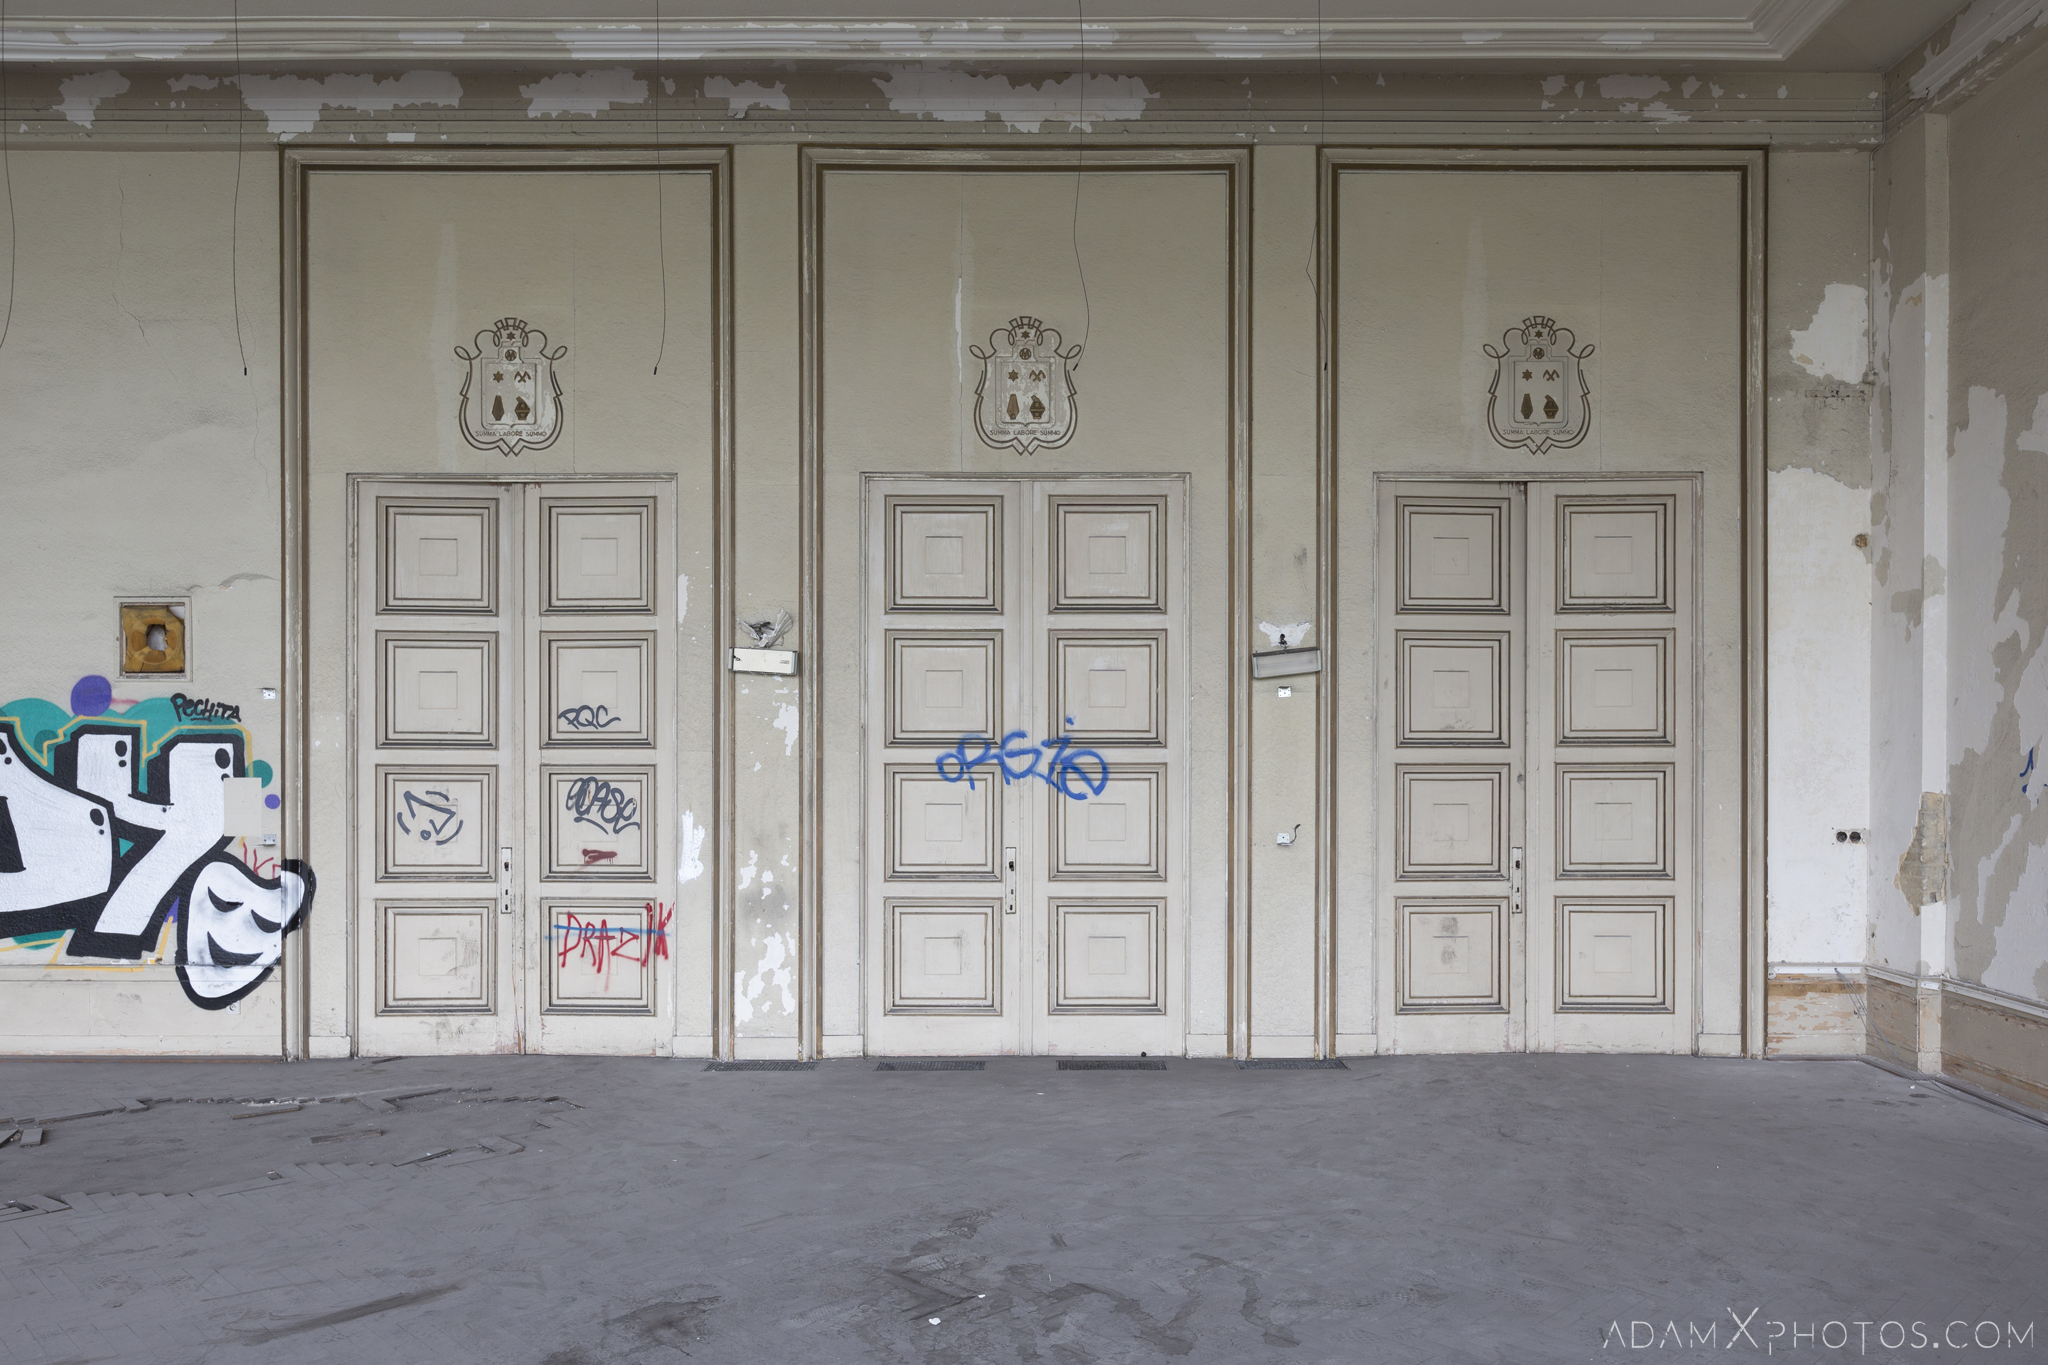 Doors ornate Theatre Salle des fêtes d'Ougrée Marihayea (OM) Théâtre Jeusette Adam X Urban Exploration Belgium Access 2017 Abandoned decay lost forgotten derelict location creepy haunting eerie